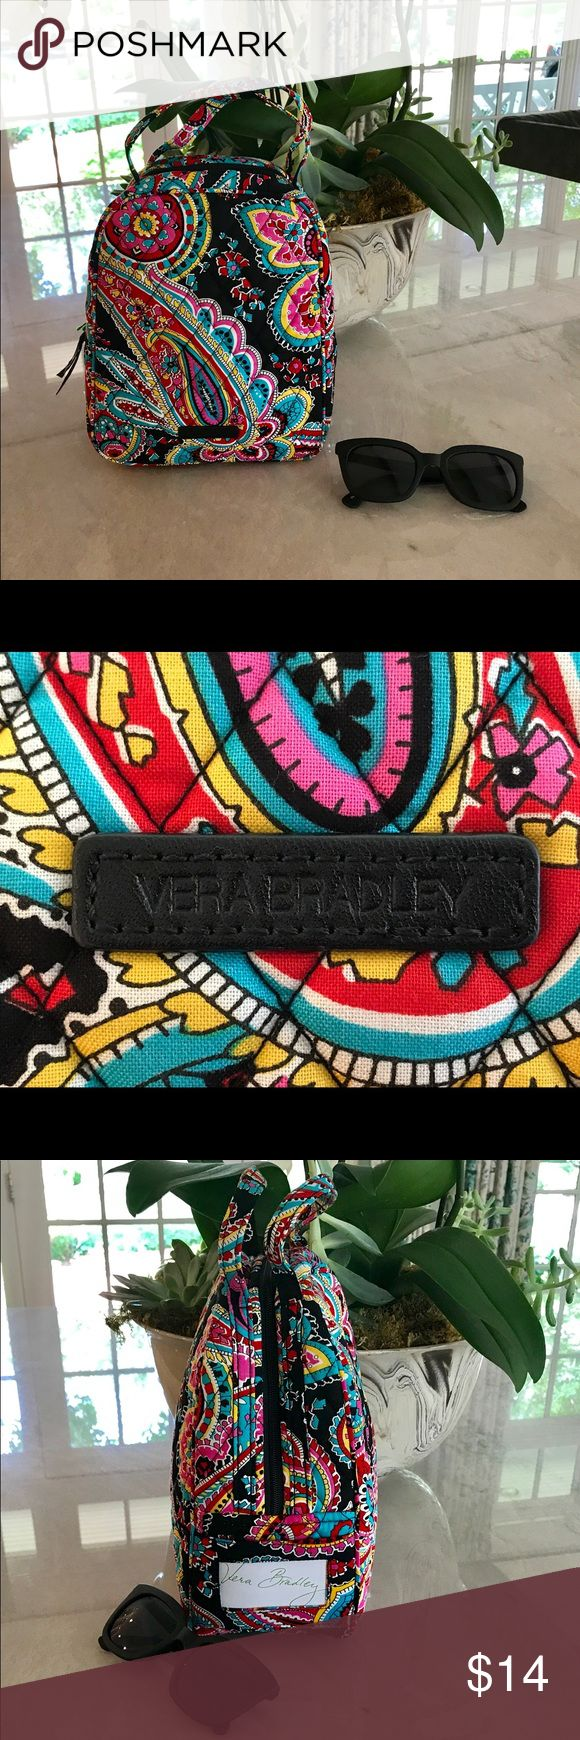 "Vera Bradley Parisian Paisley Lunch Bunch Brand new with tags  Perfect way to bring your lunch in style. Made of 100% Cotton with Wipeable interior. Will fit most prepackaged frozen meals and thermos. Approximate Measurements are7.5"" x 9"" x 4 1/4"" Vera Bradley Bags"